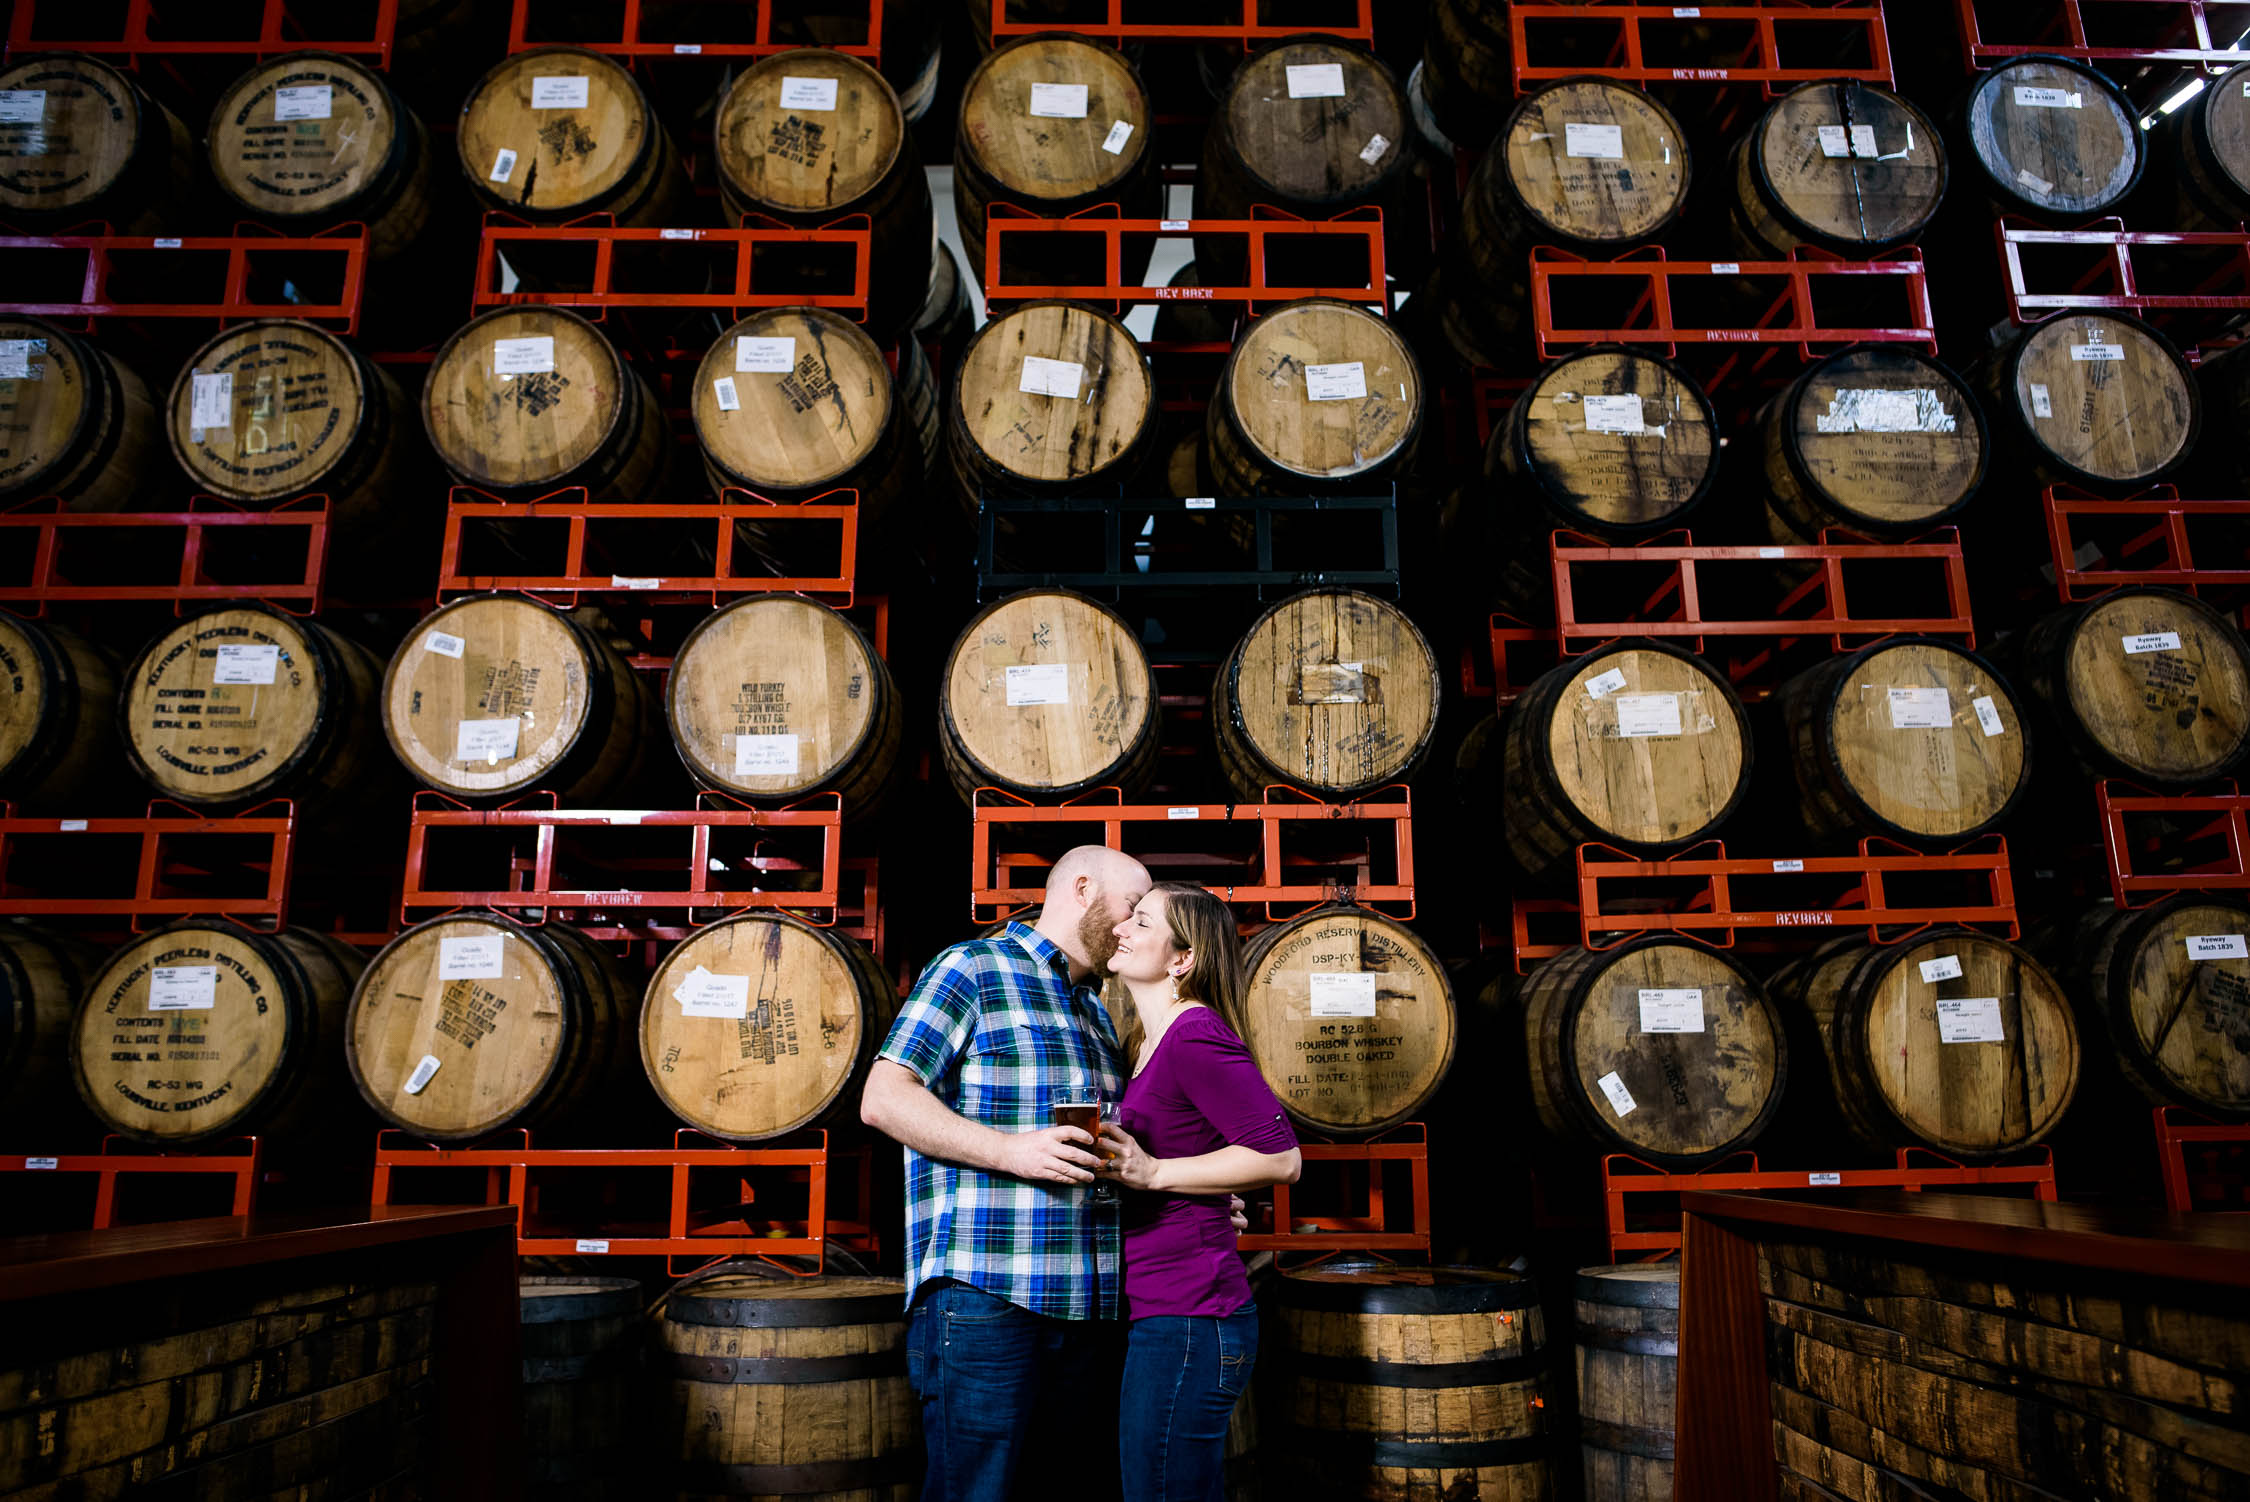 Couple kisses in front of aging barrels at Revolution Brewing during their Chicago engagement session.